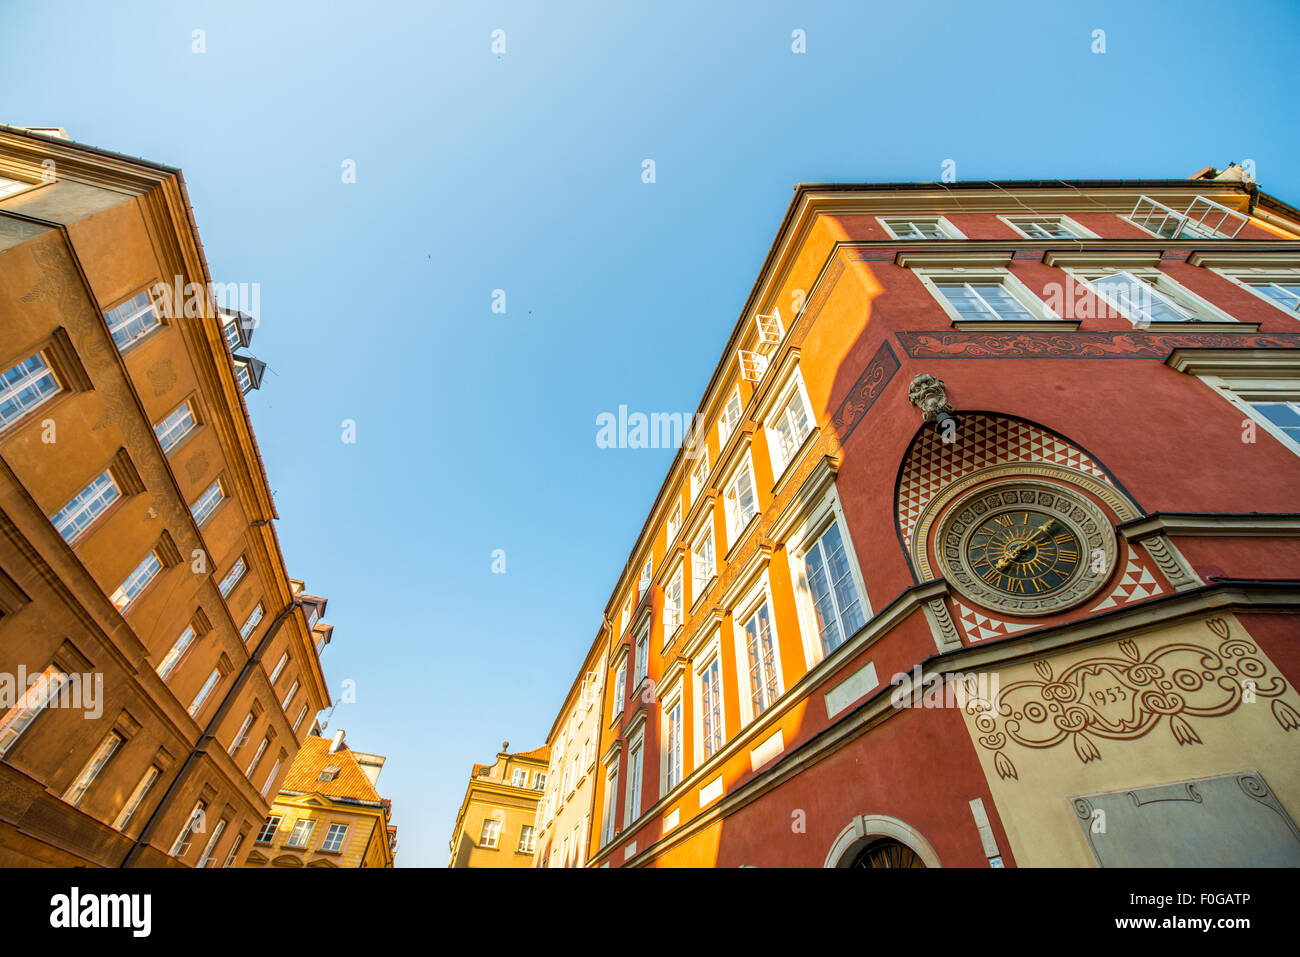 Old city clock in Warsaw - Stock Image